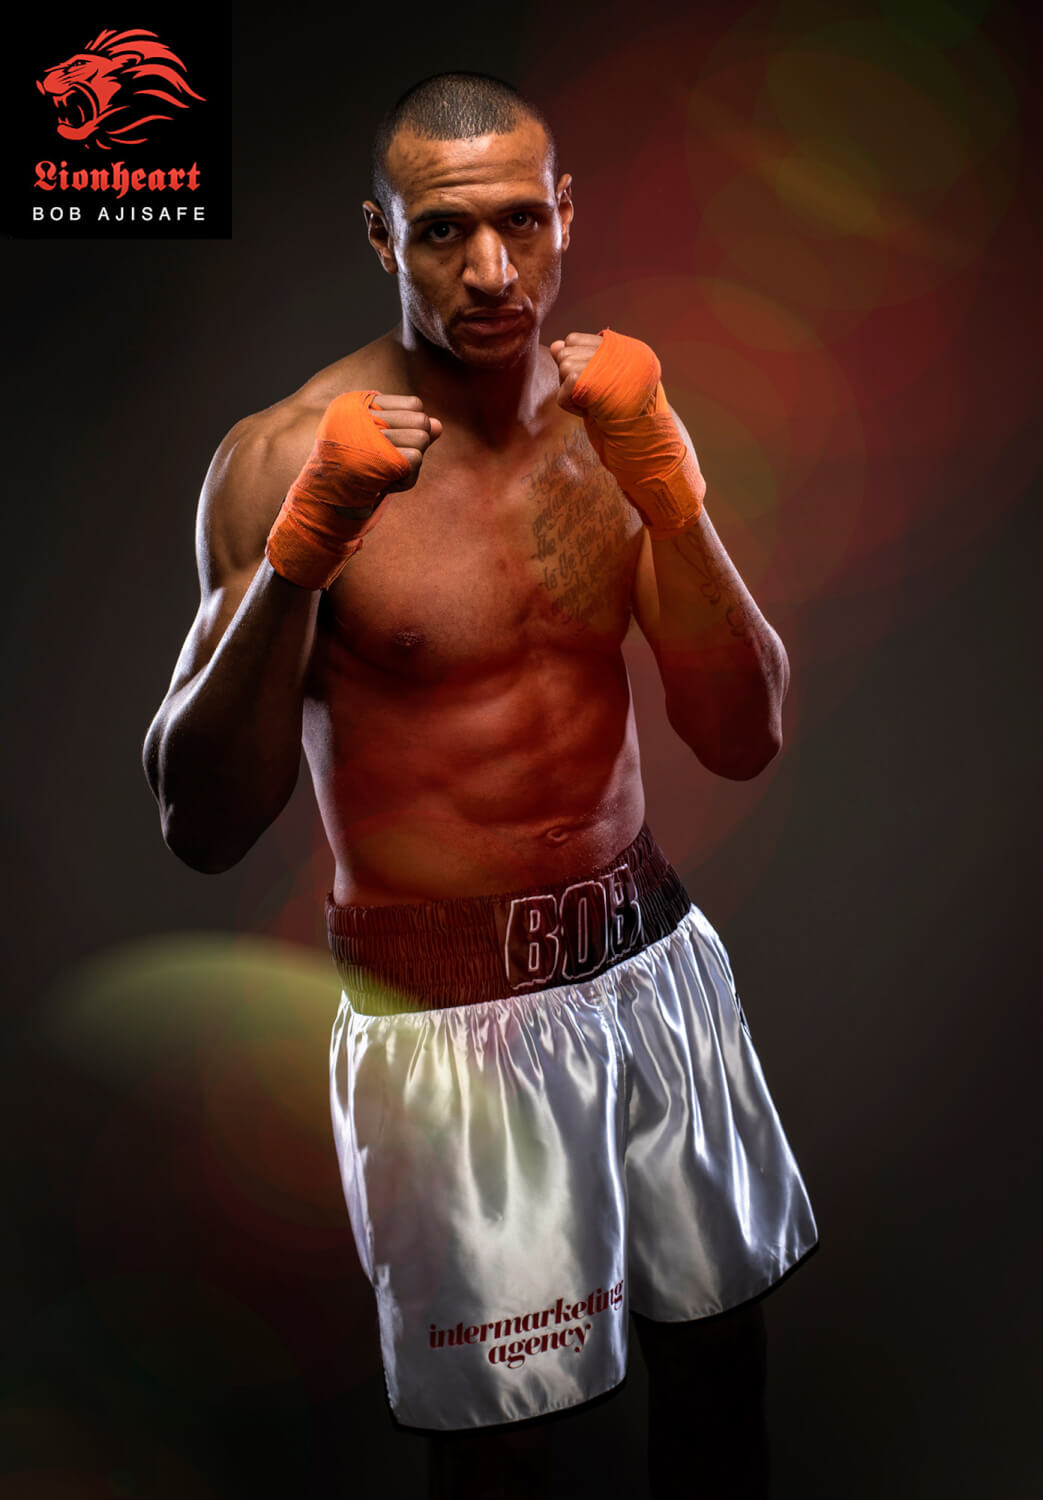 Bob-Boxer-12-with-logo-website